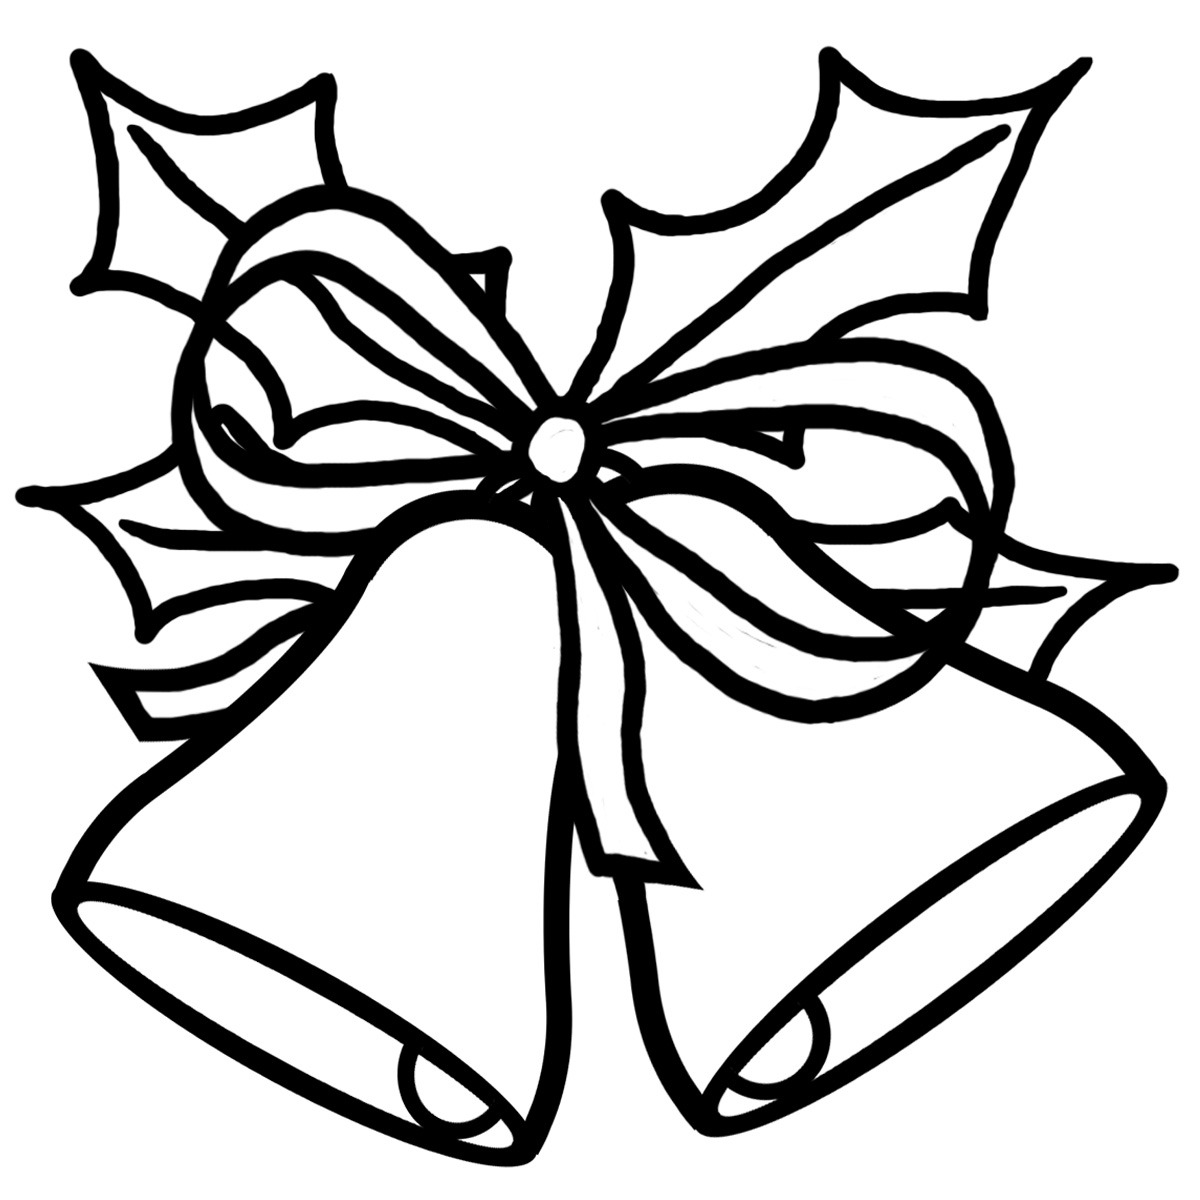 1200x1200 Christmas Tree Outline On Black Clipart